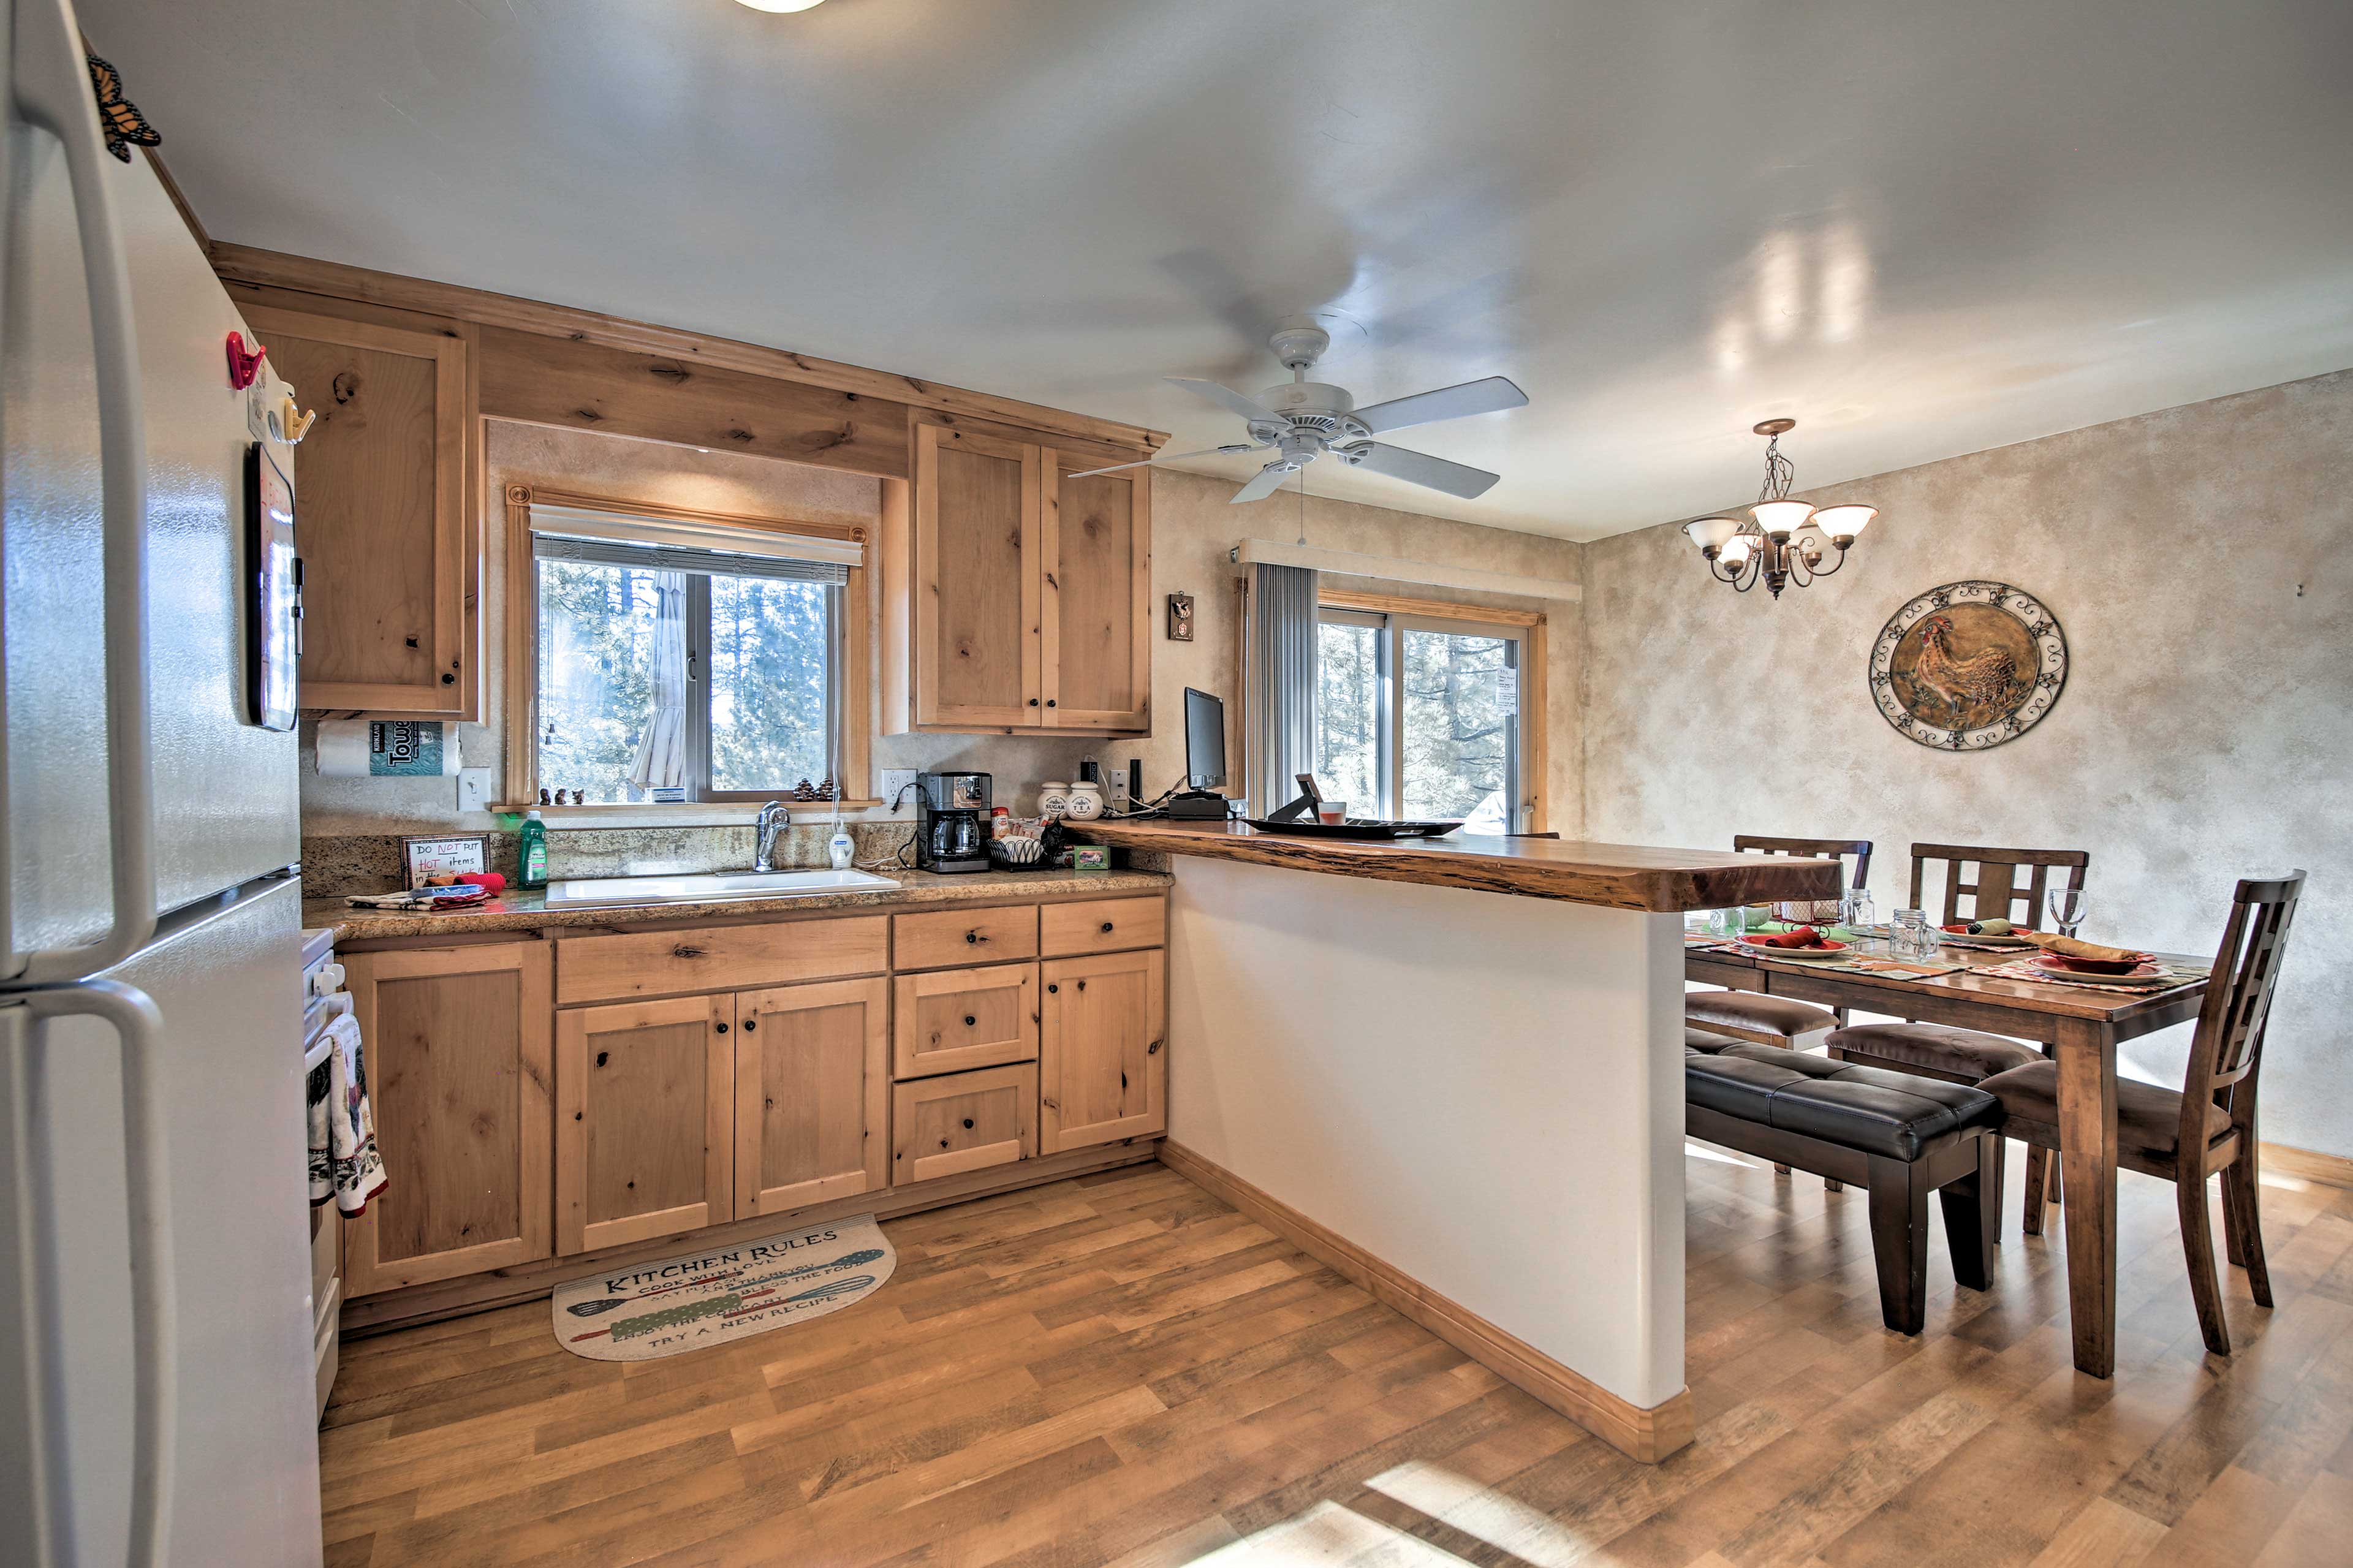 Easily communicate through the open-concept layout.